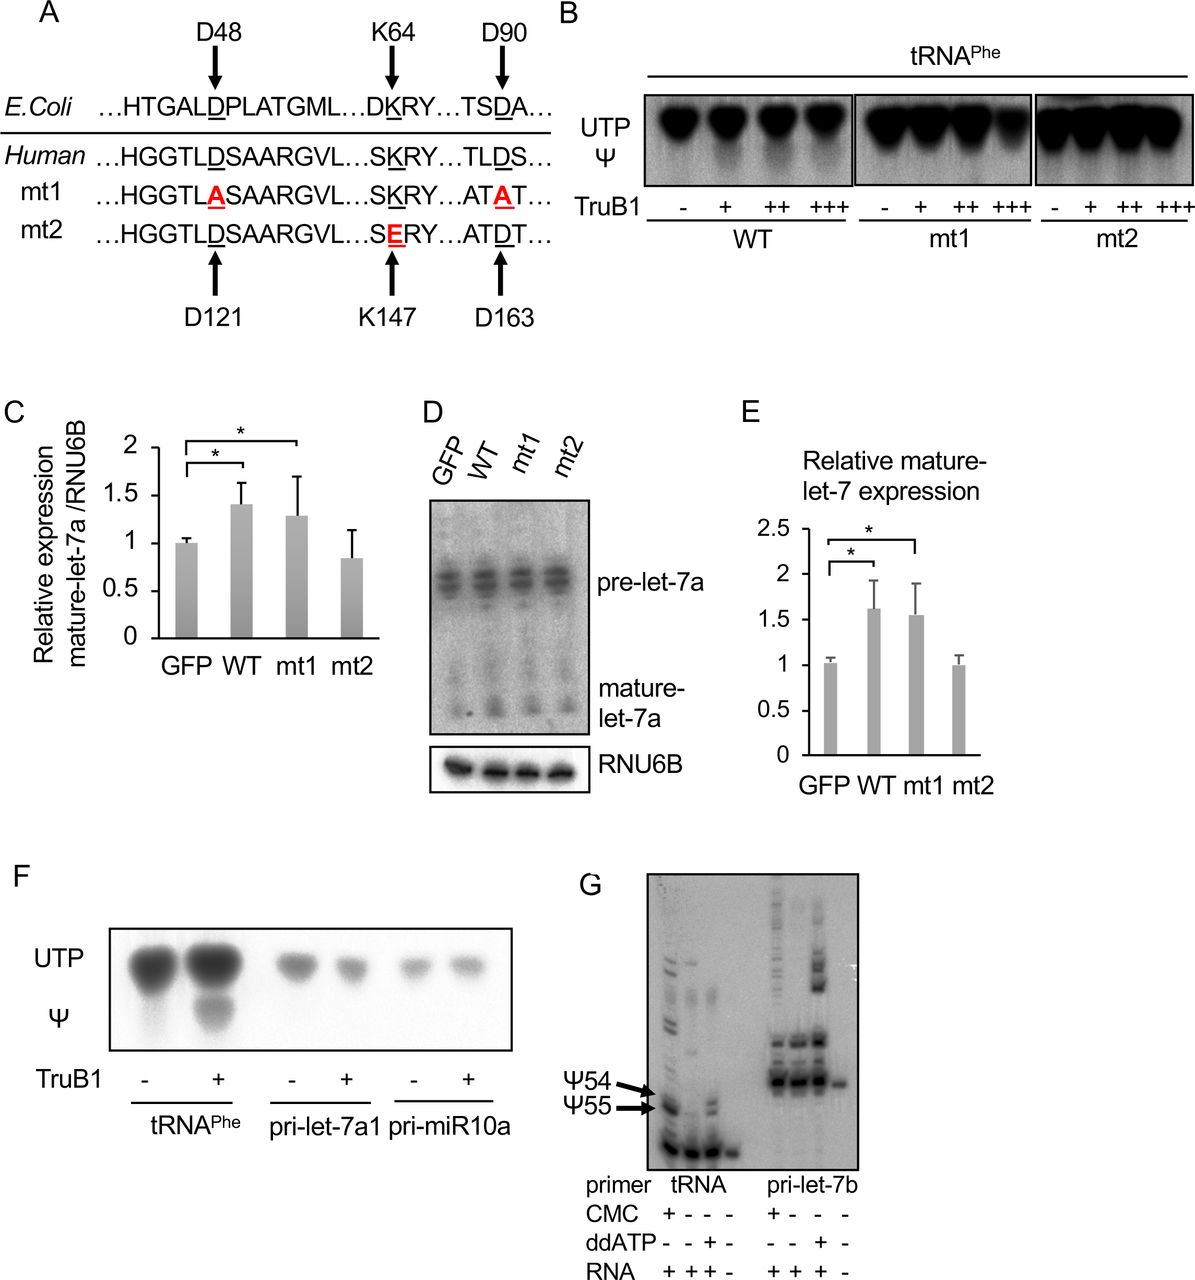 TruB1 promotes let-7 processing independently of its enzymatic activity. (A). Amino acid sequences encoding for the enzyme activity and RNA binding ability in E.coli TruB and human TruB1 (Top). Design of mutant 1 (mt1) and mutant 2 (mt2) (bottom). (B). In vitro enzyme activity assay. 32 p-UTP-labelled tRNA phe were treated with recombinant TruB1, mt1, or mt2. The strong upper bands represent UTP, and the lower weaker bands represent pseudouridine (Ψ) on autoradiographs of the TLC plate. (C). Relative miRNA expression of let-7a in HEK-293 cells infected with tetracycline-inducible expressing lentiviruses for TruB1, mt1, mt2 or GFP 5 days after doxycycline treatment, as determined by qRT-PCR. (D). Northern blotting for let-7a and RNU6B in HEK-293 cells infected with lentiviruses encoding tetracycline-inducible expression of TruB1, mt1, mt2, or GFP, 5 days after doxycycline treatment. (E). Hybridization intensities of (D) were quantified and normalized to ctrl (GFP). (F). Pseudouridylation activity of TruB1 for tRNA and pri-miRNAs. 32 p-UTP-labelled tRNA phe , pri-let-7a1 or pri-miR10a were treated with recombinant TruB1. Upper bands represent UTP, lower bands represent pseudouridine (Ψ) in autoradiographs of the TLC plate. (G). Location of pseudouridine sites detected by the CMC primer extension method. Total RNA purified from HEK-293FT cells were treated with CMC. CMC treated RNA were reverse-transcribed with RI-labelled specific primers for tRNA phe or pri-let-7b. ddATP was used for sequence control. Pseudouridines are indicated by black arrows. All experiments were performed in triplicate. Error bars show SD; n=3.